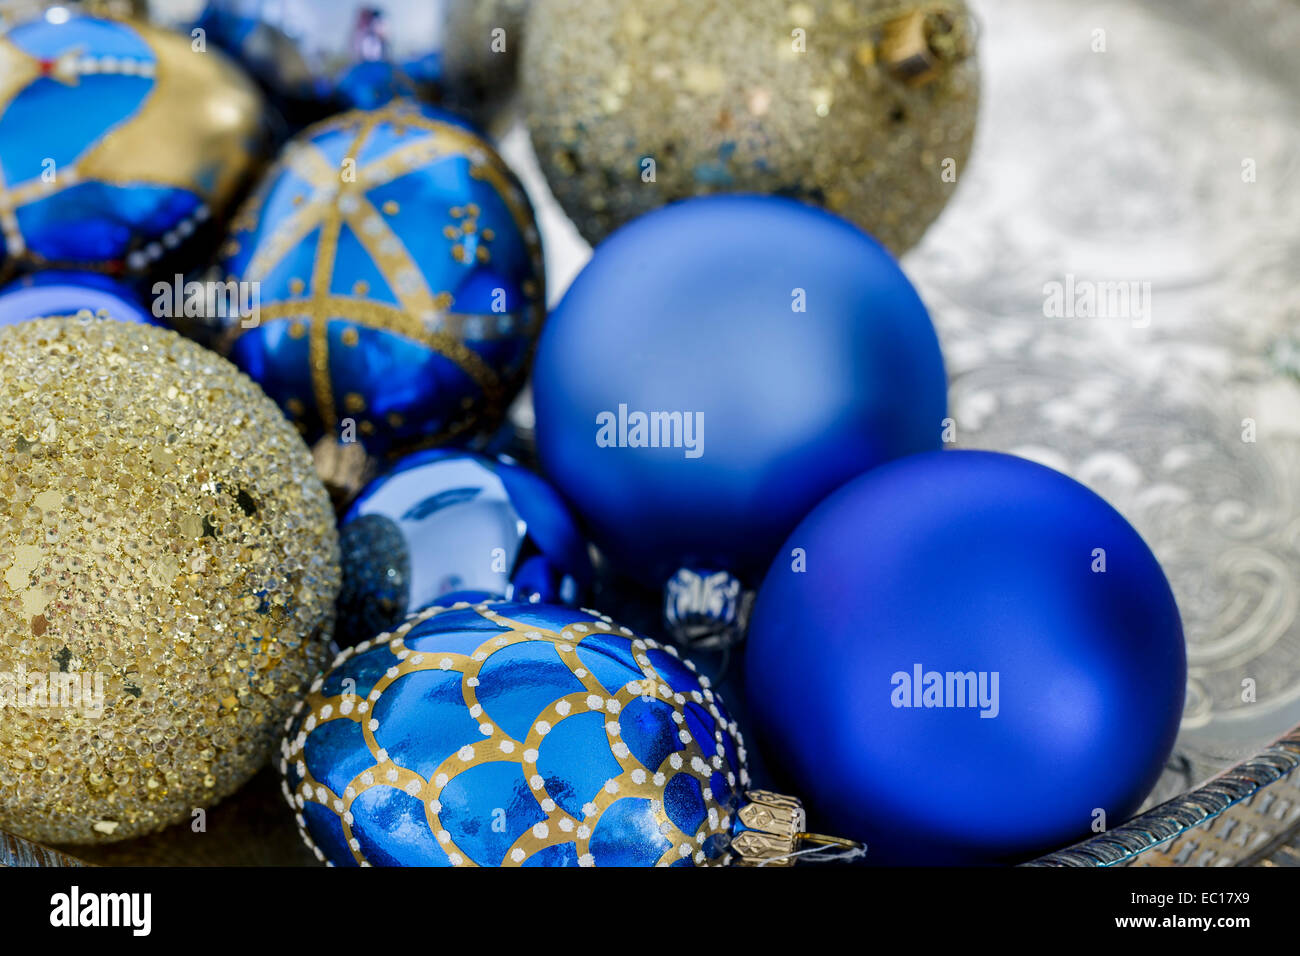 Blue And Gold Christmas Decorations On A Silver Tray Stock Photo Alamy